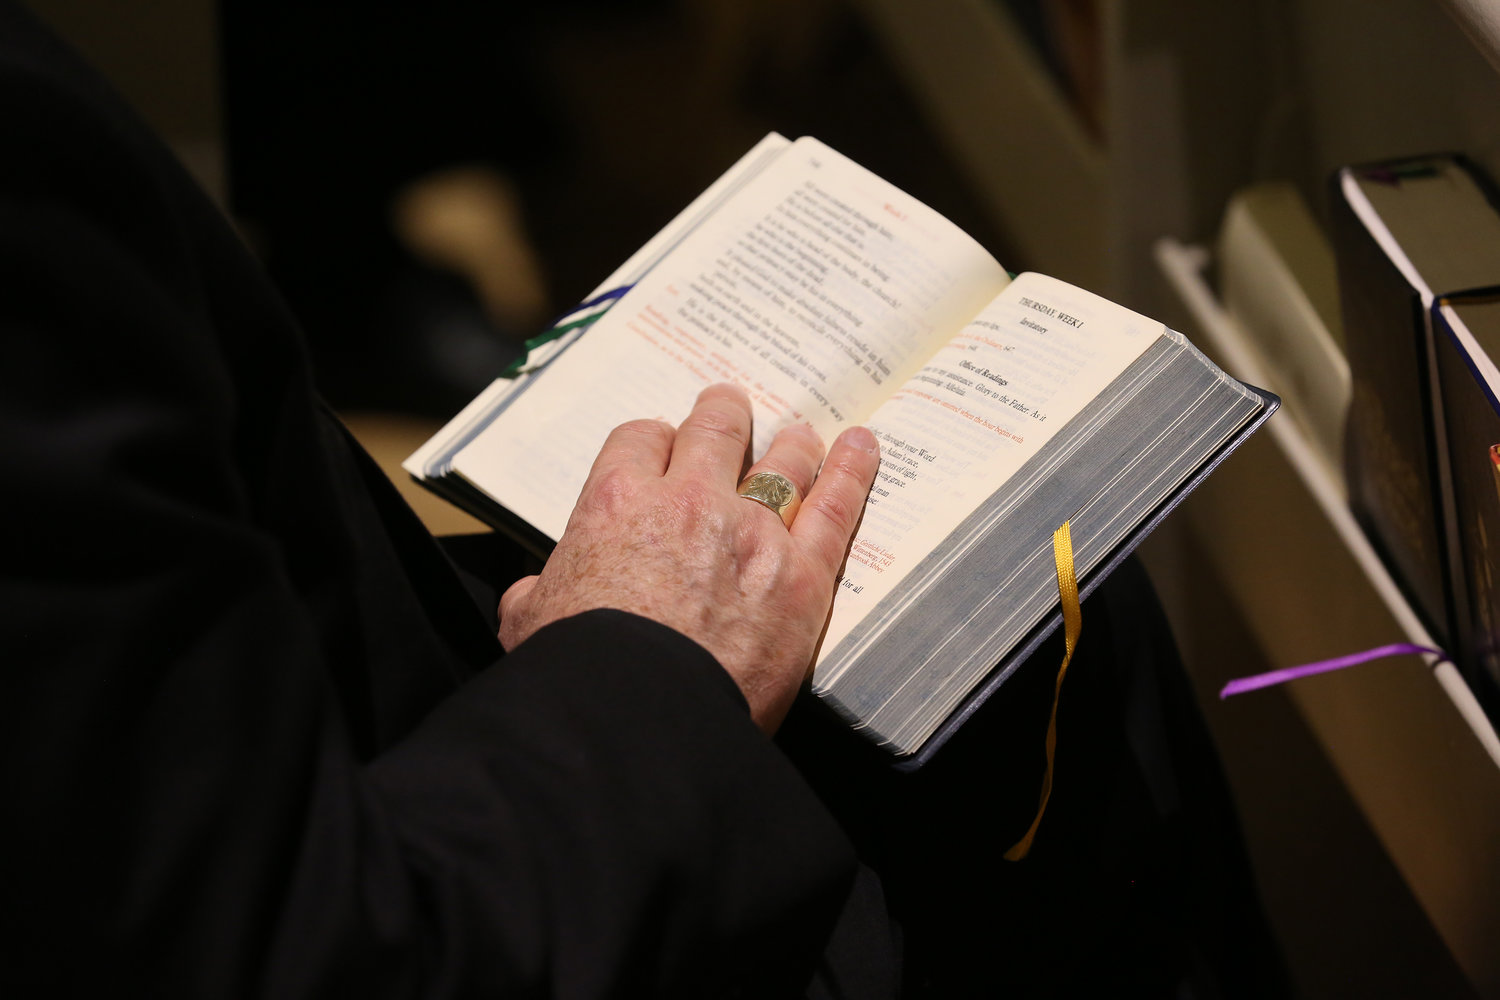 A bishop holds a prayer book during a service in the Chapel of the Immaculate Conception at Mundelein Seminary Jan. 2 at the University of St. Mary of the Lake in Illinois, near Chicago.